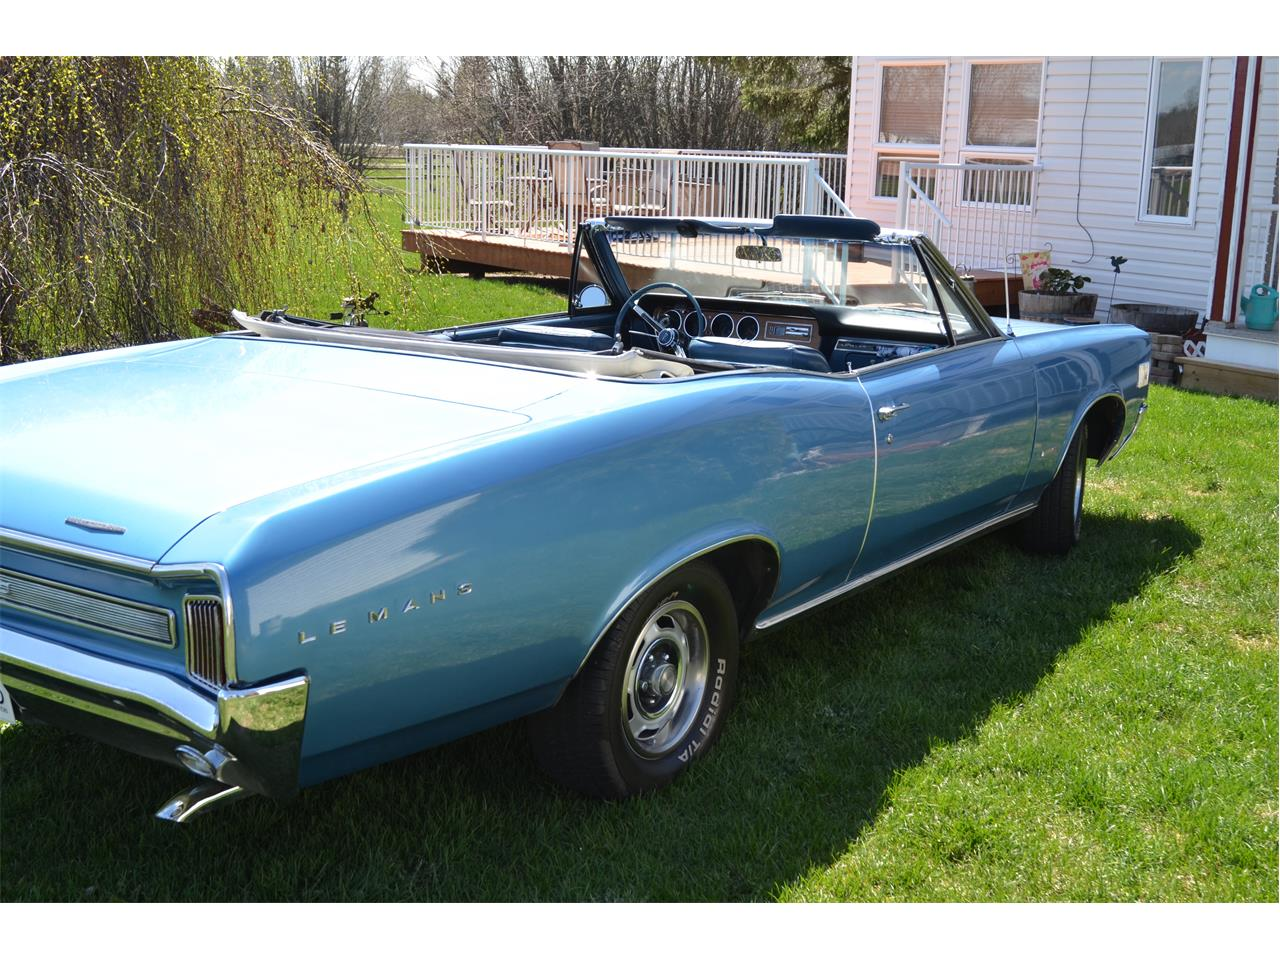 Large Picture of Classic '66 Pontiac LeMans - $32,000.00 Offered by a Private Seller - GCAH